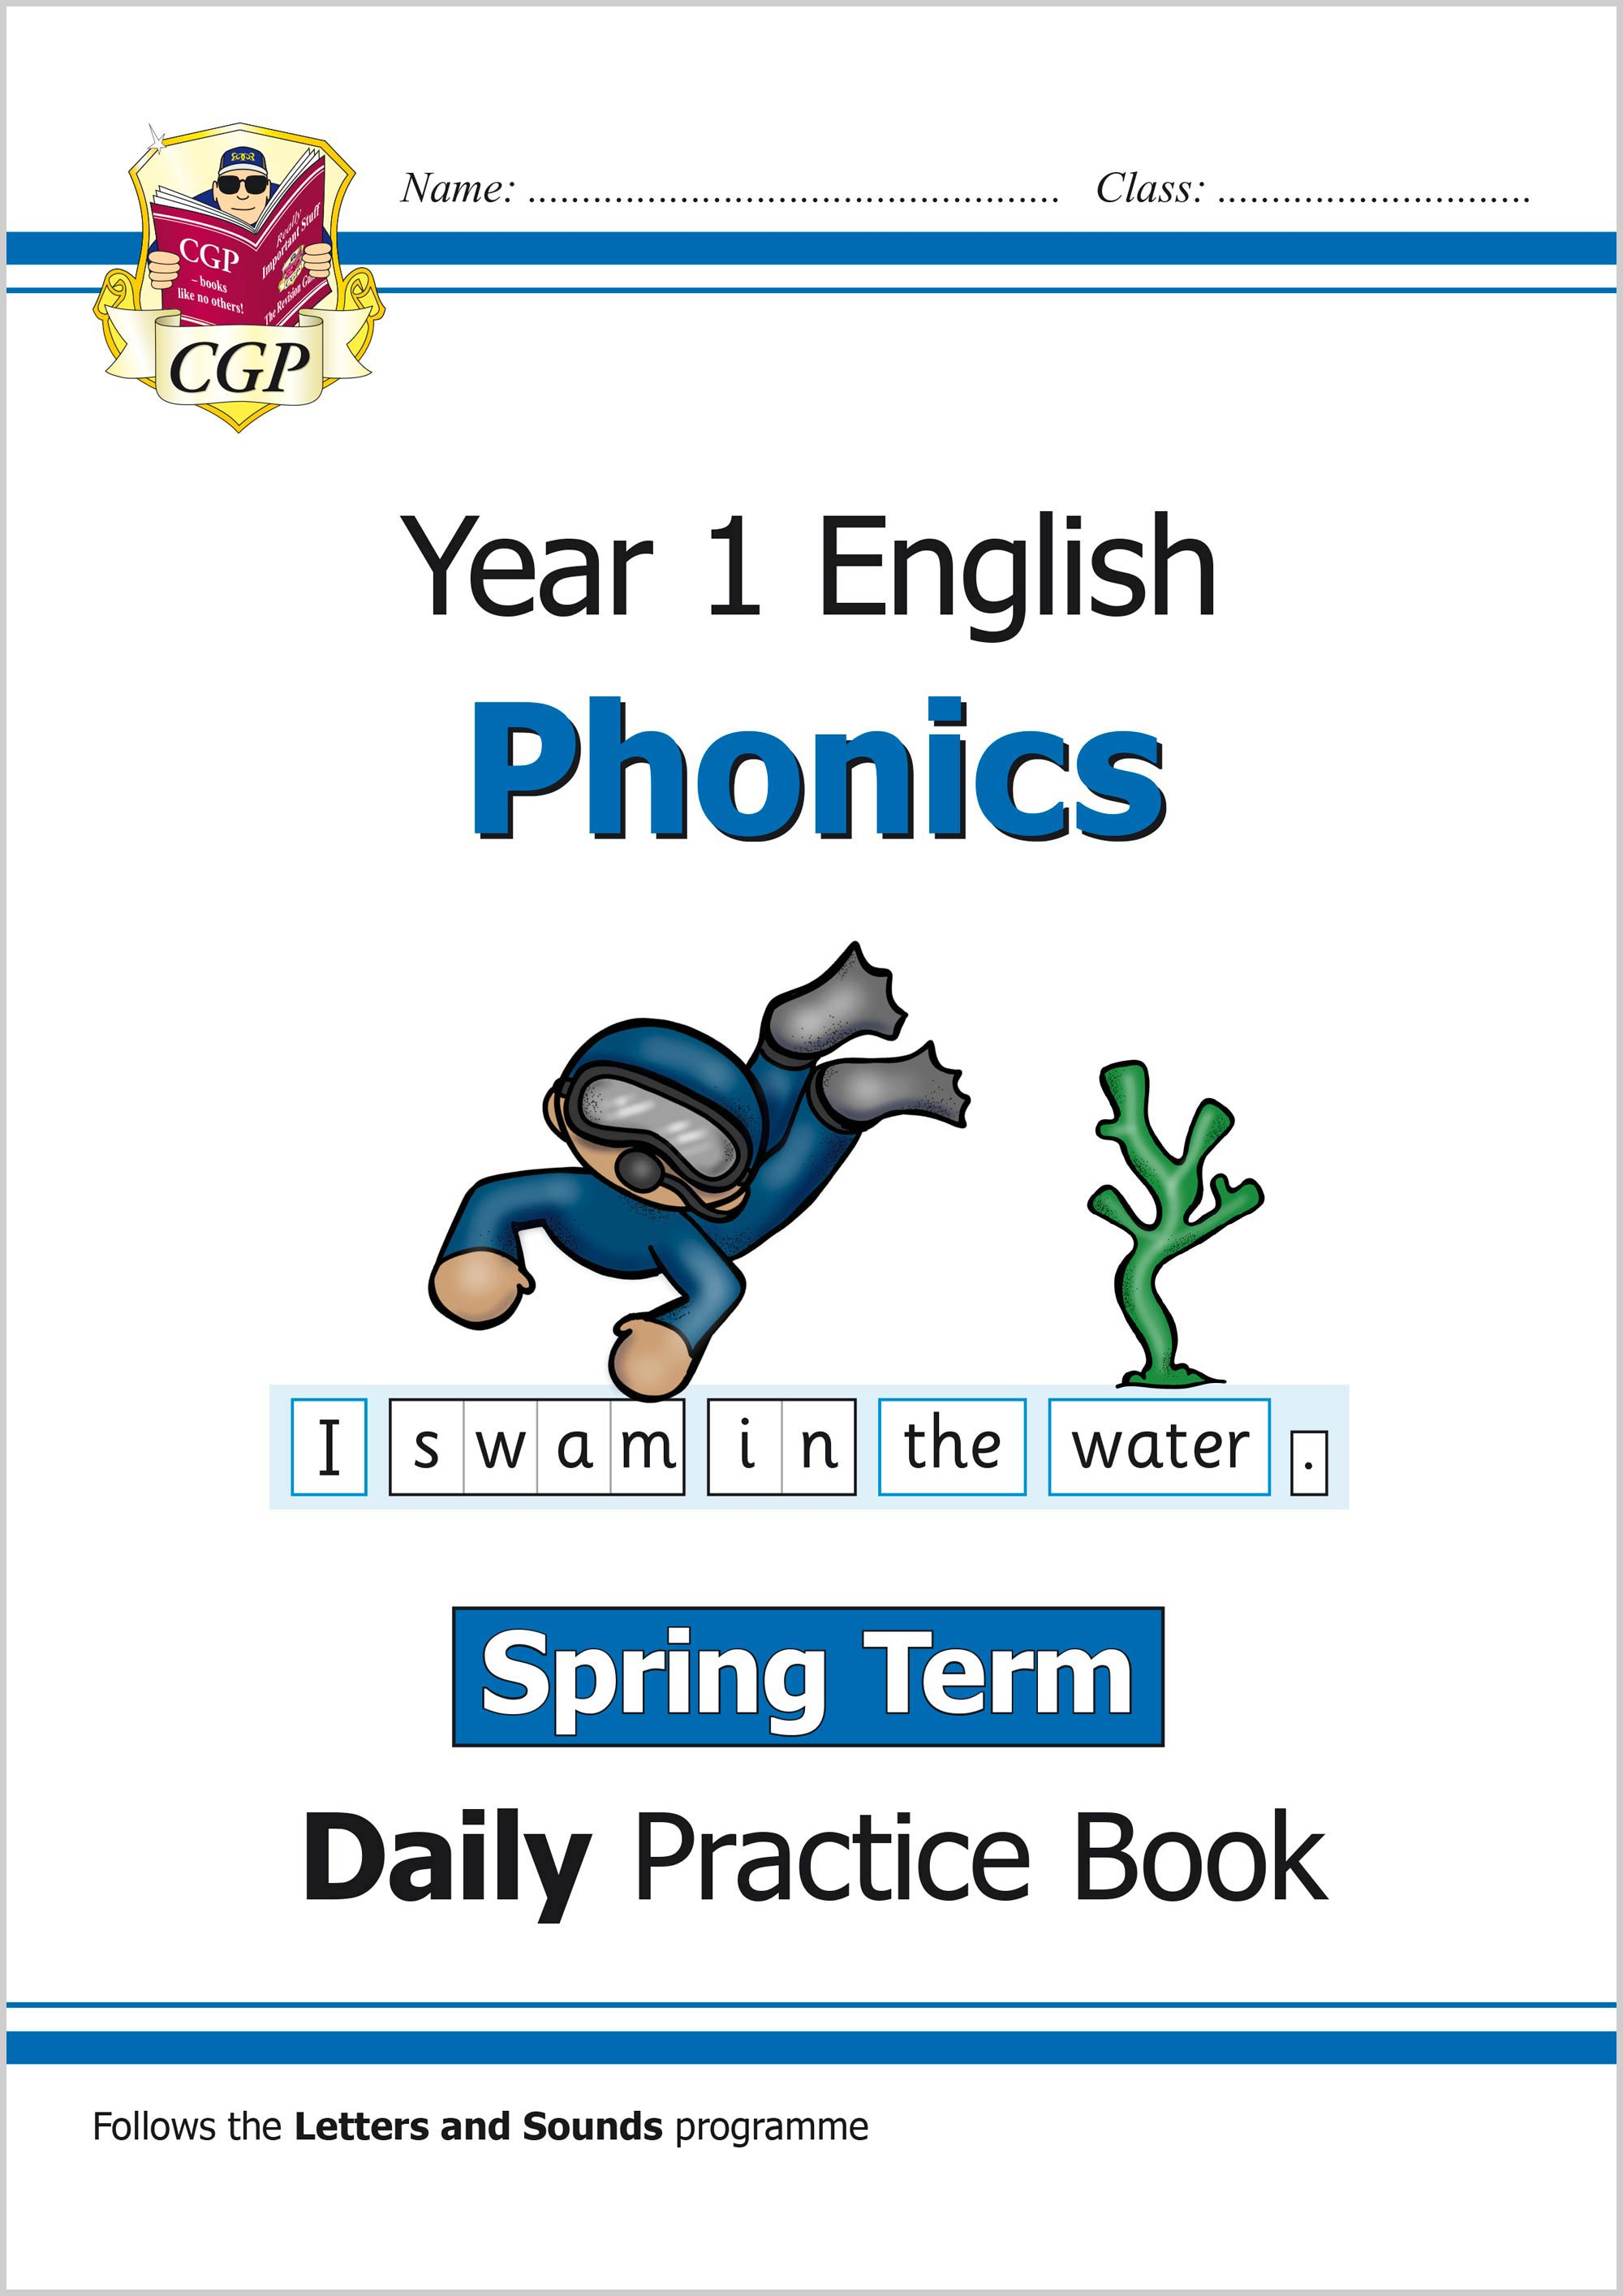 E1OWSP11 - New KS1 Phonics Daily Practice Book: Year 1 - Spring Term